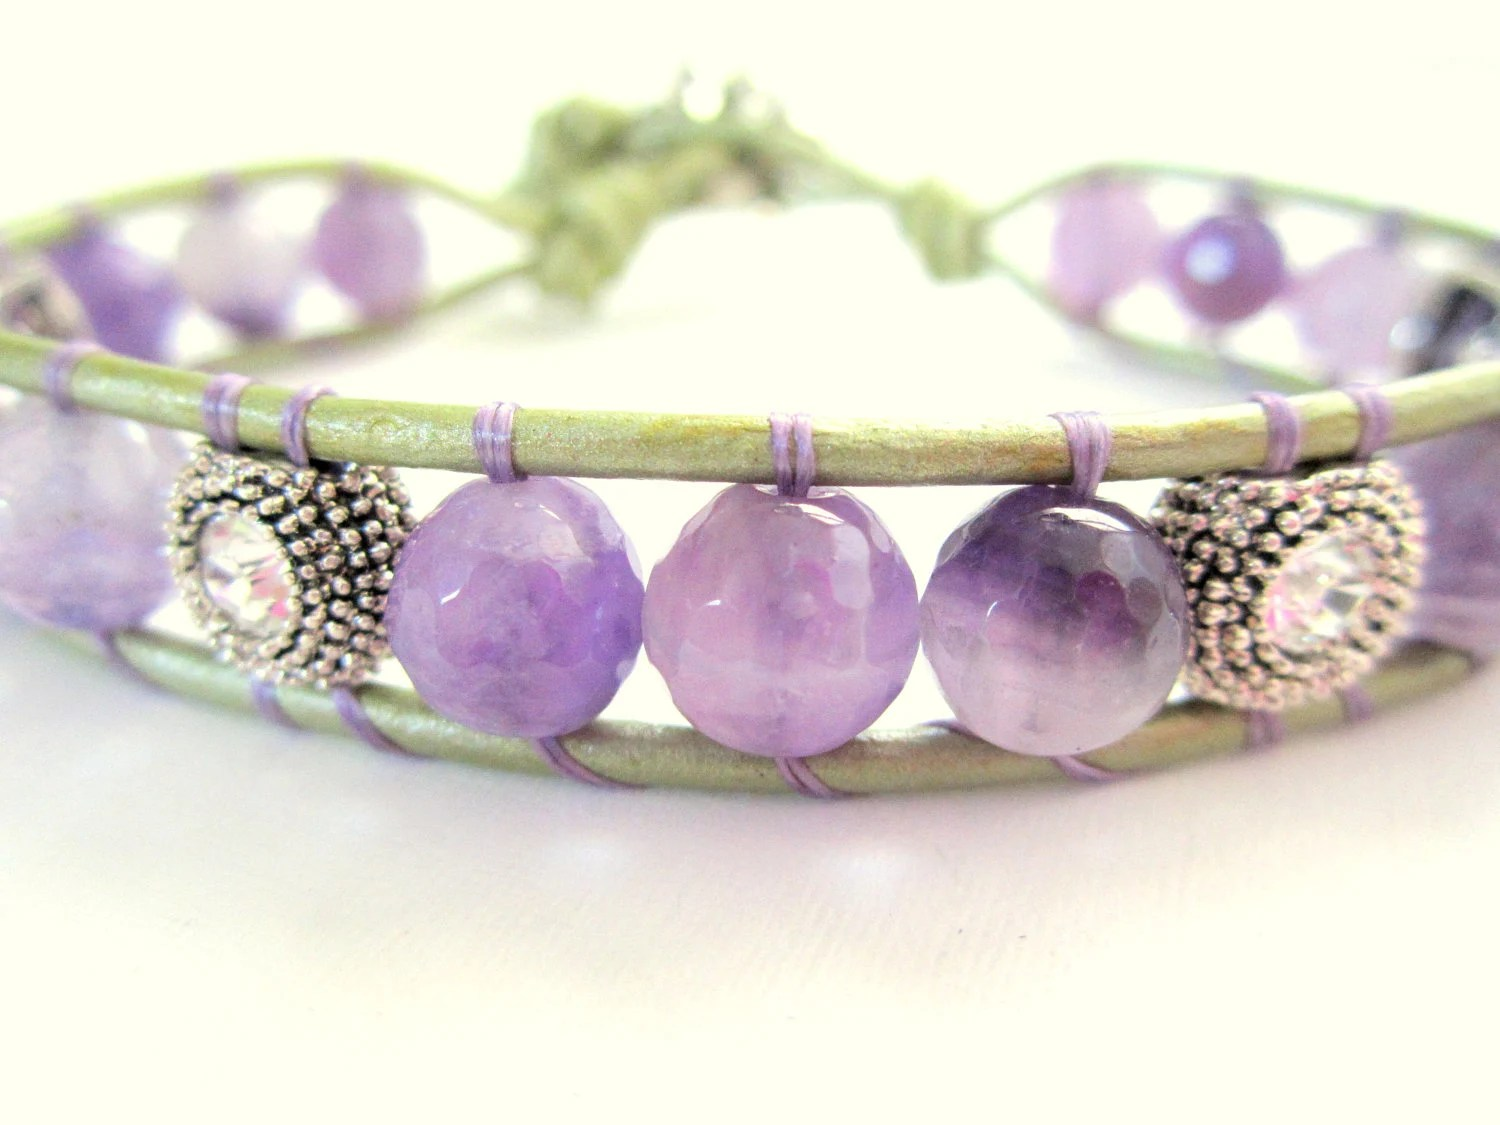 Amethyst Bracelet, Leather Bracelet, Gemstone Bracelet, Swarovski Crystal Bracelet, Womens Leather Wrap, Rhinestone Button, Purple and Green - diamondggems